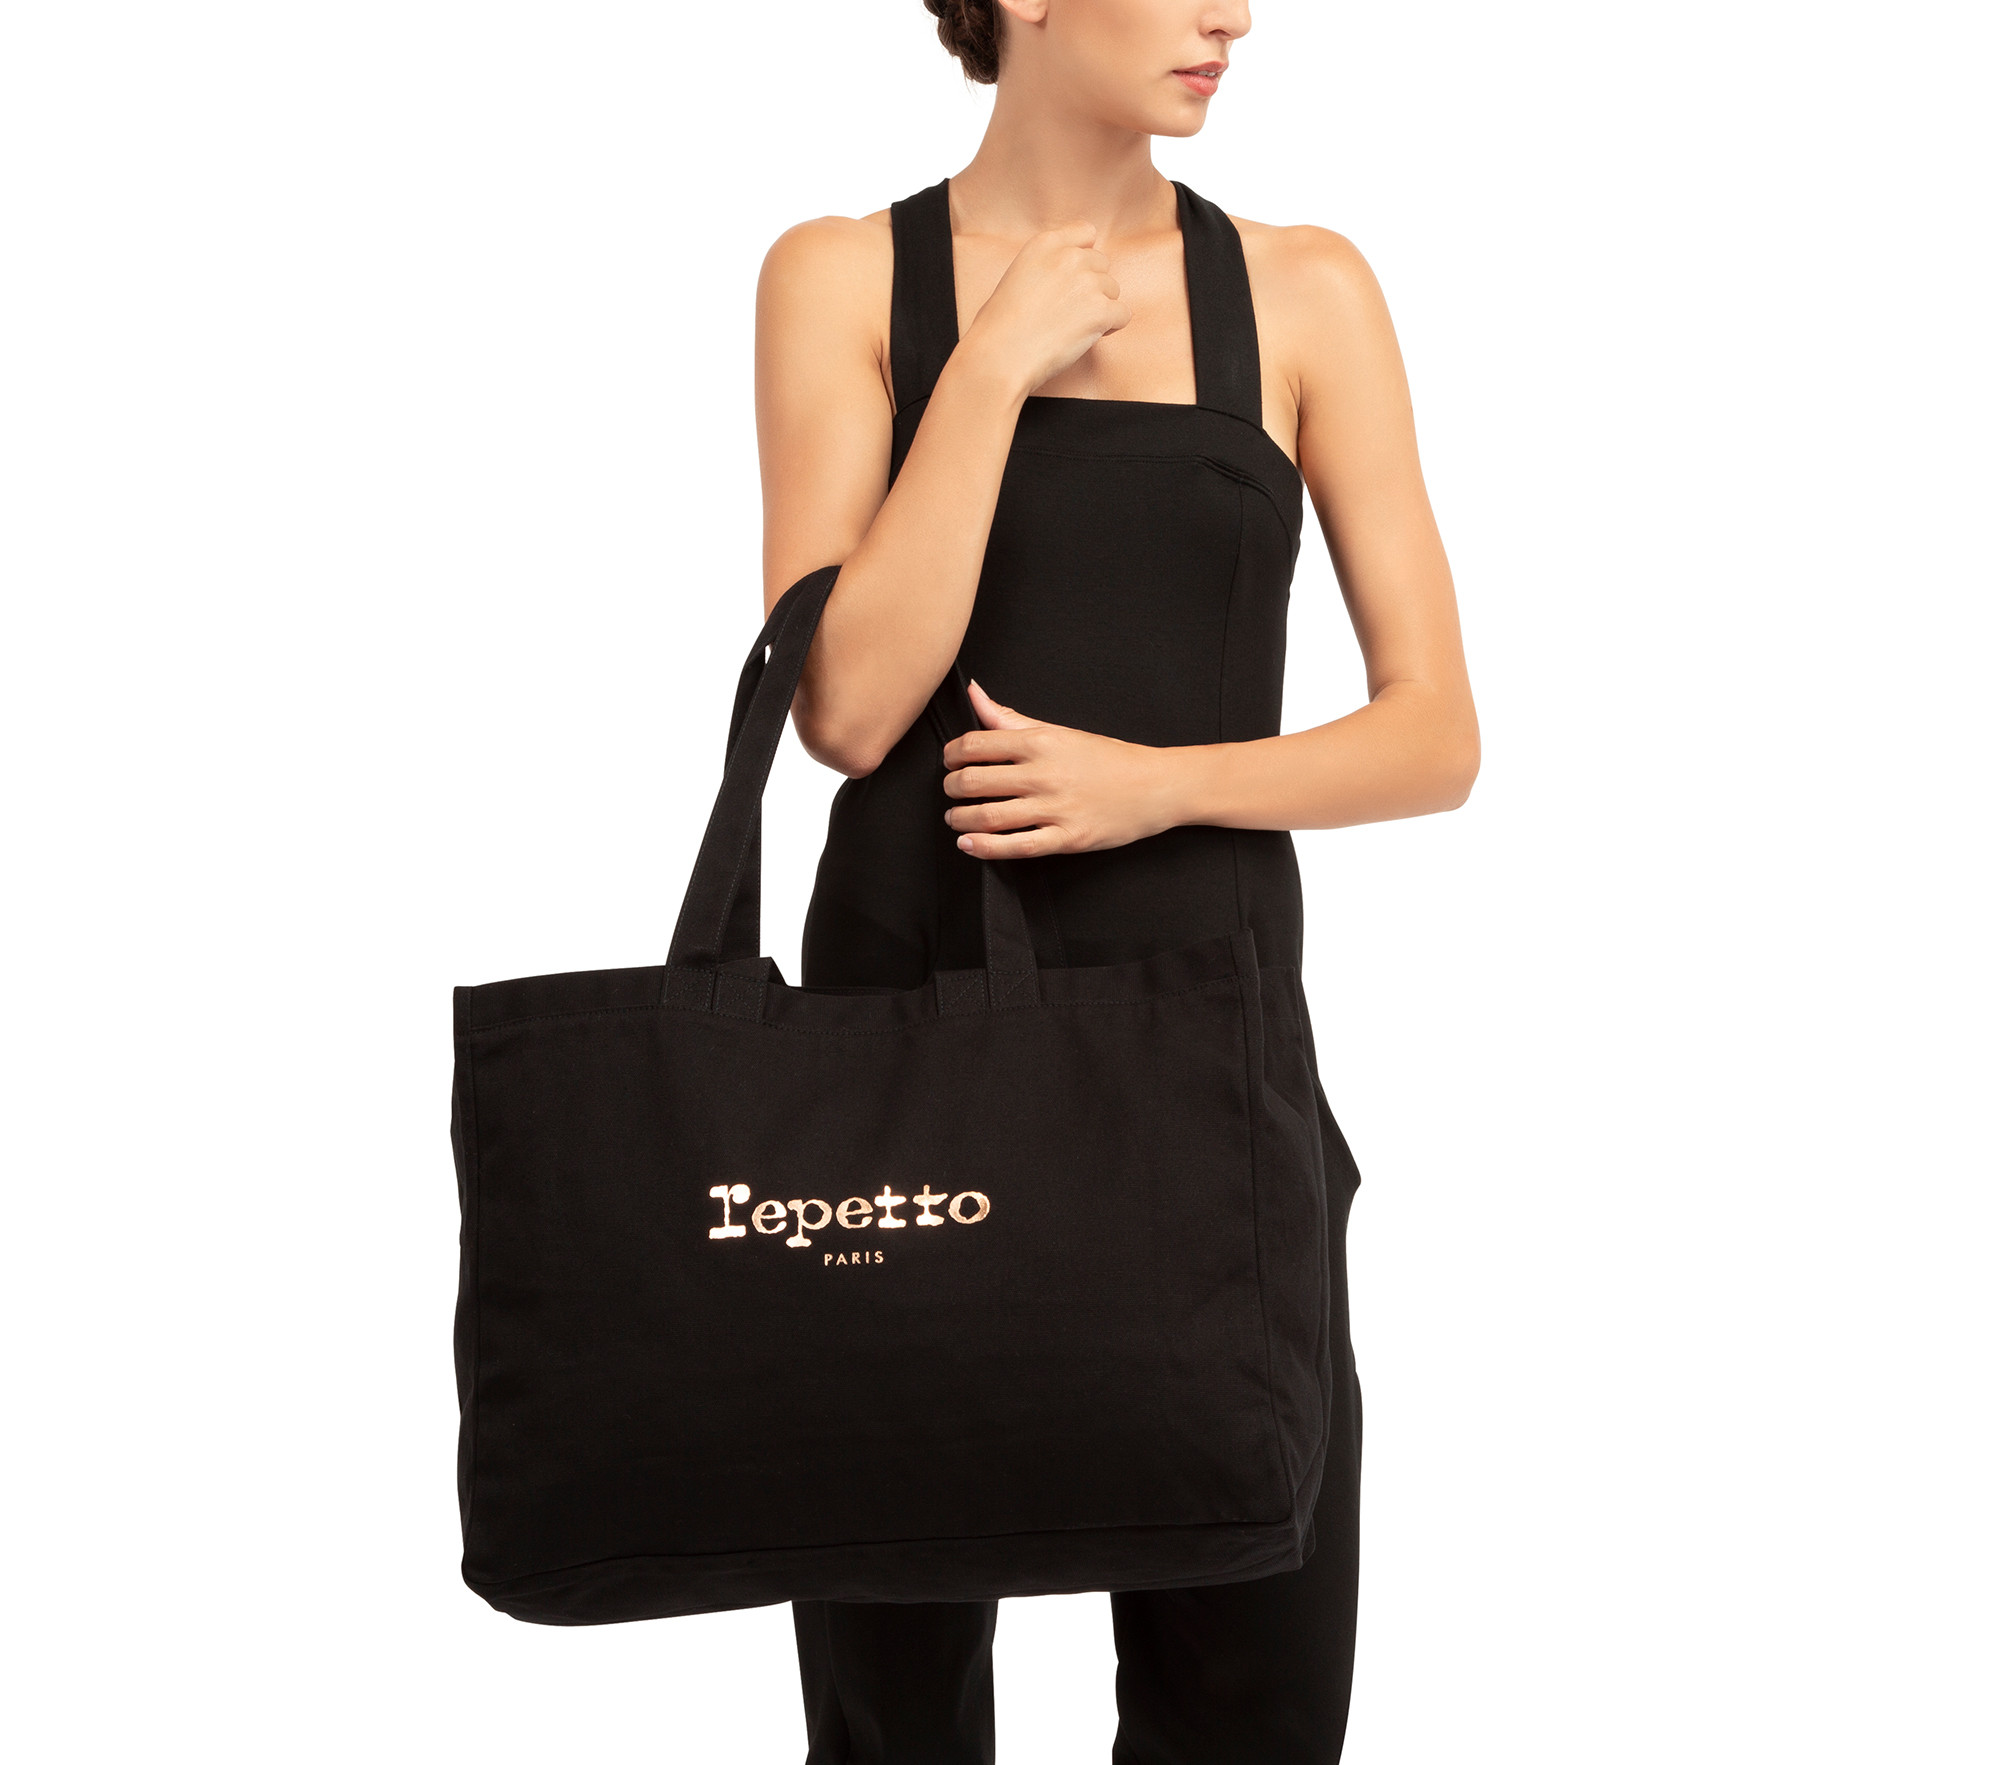 Danseuse shopper bag